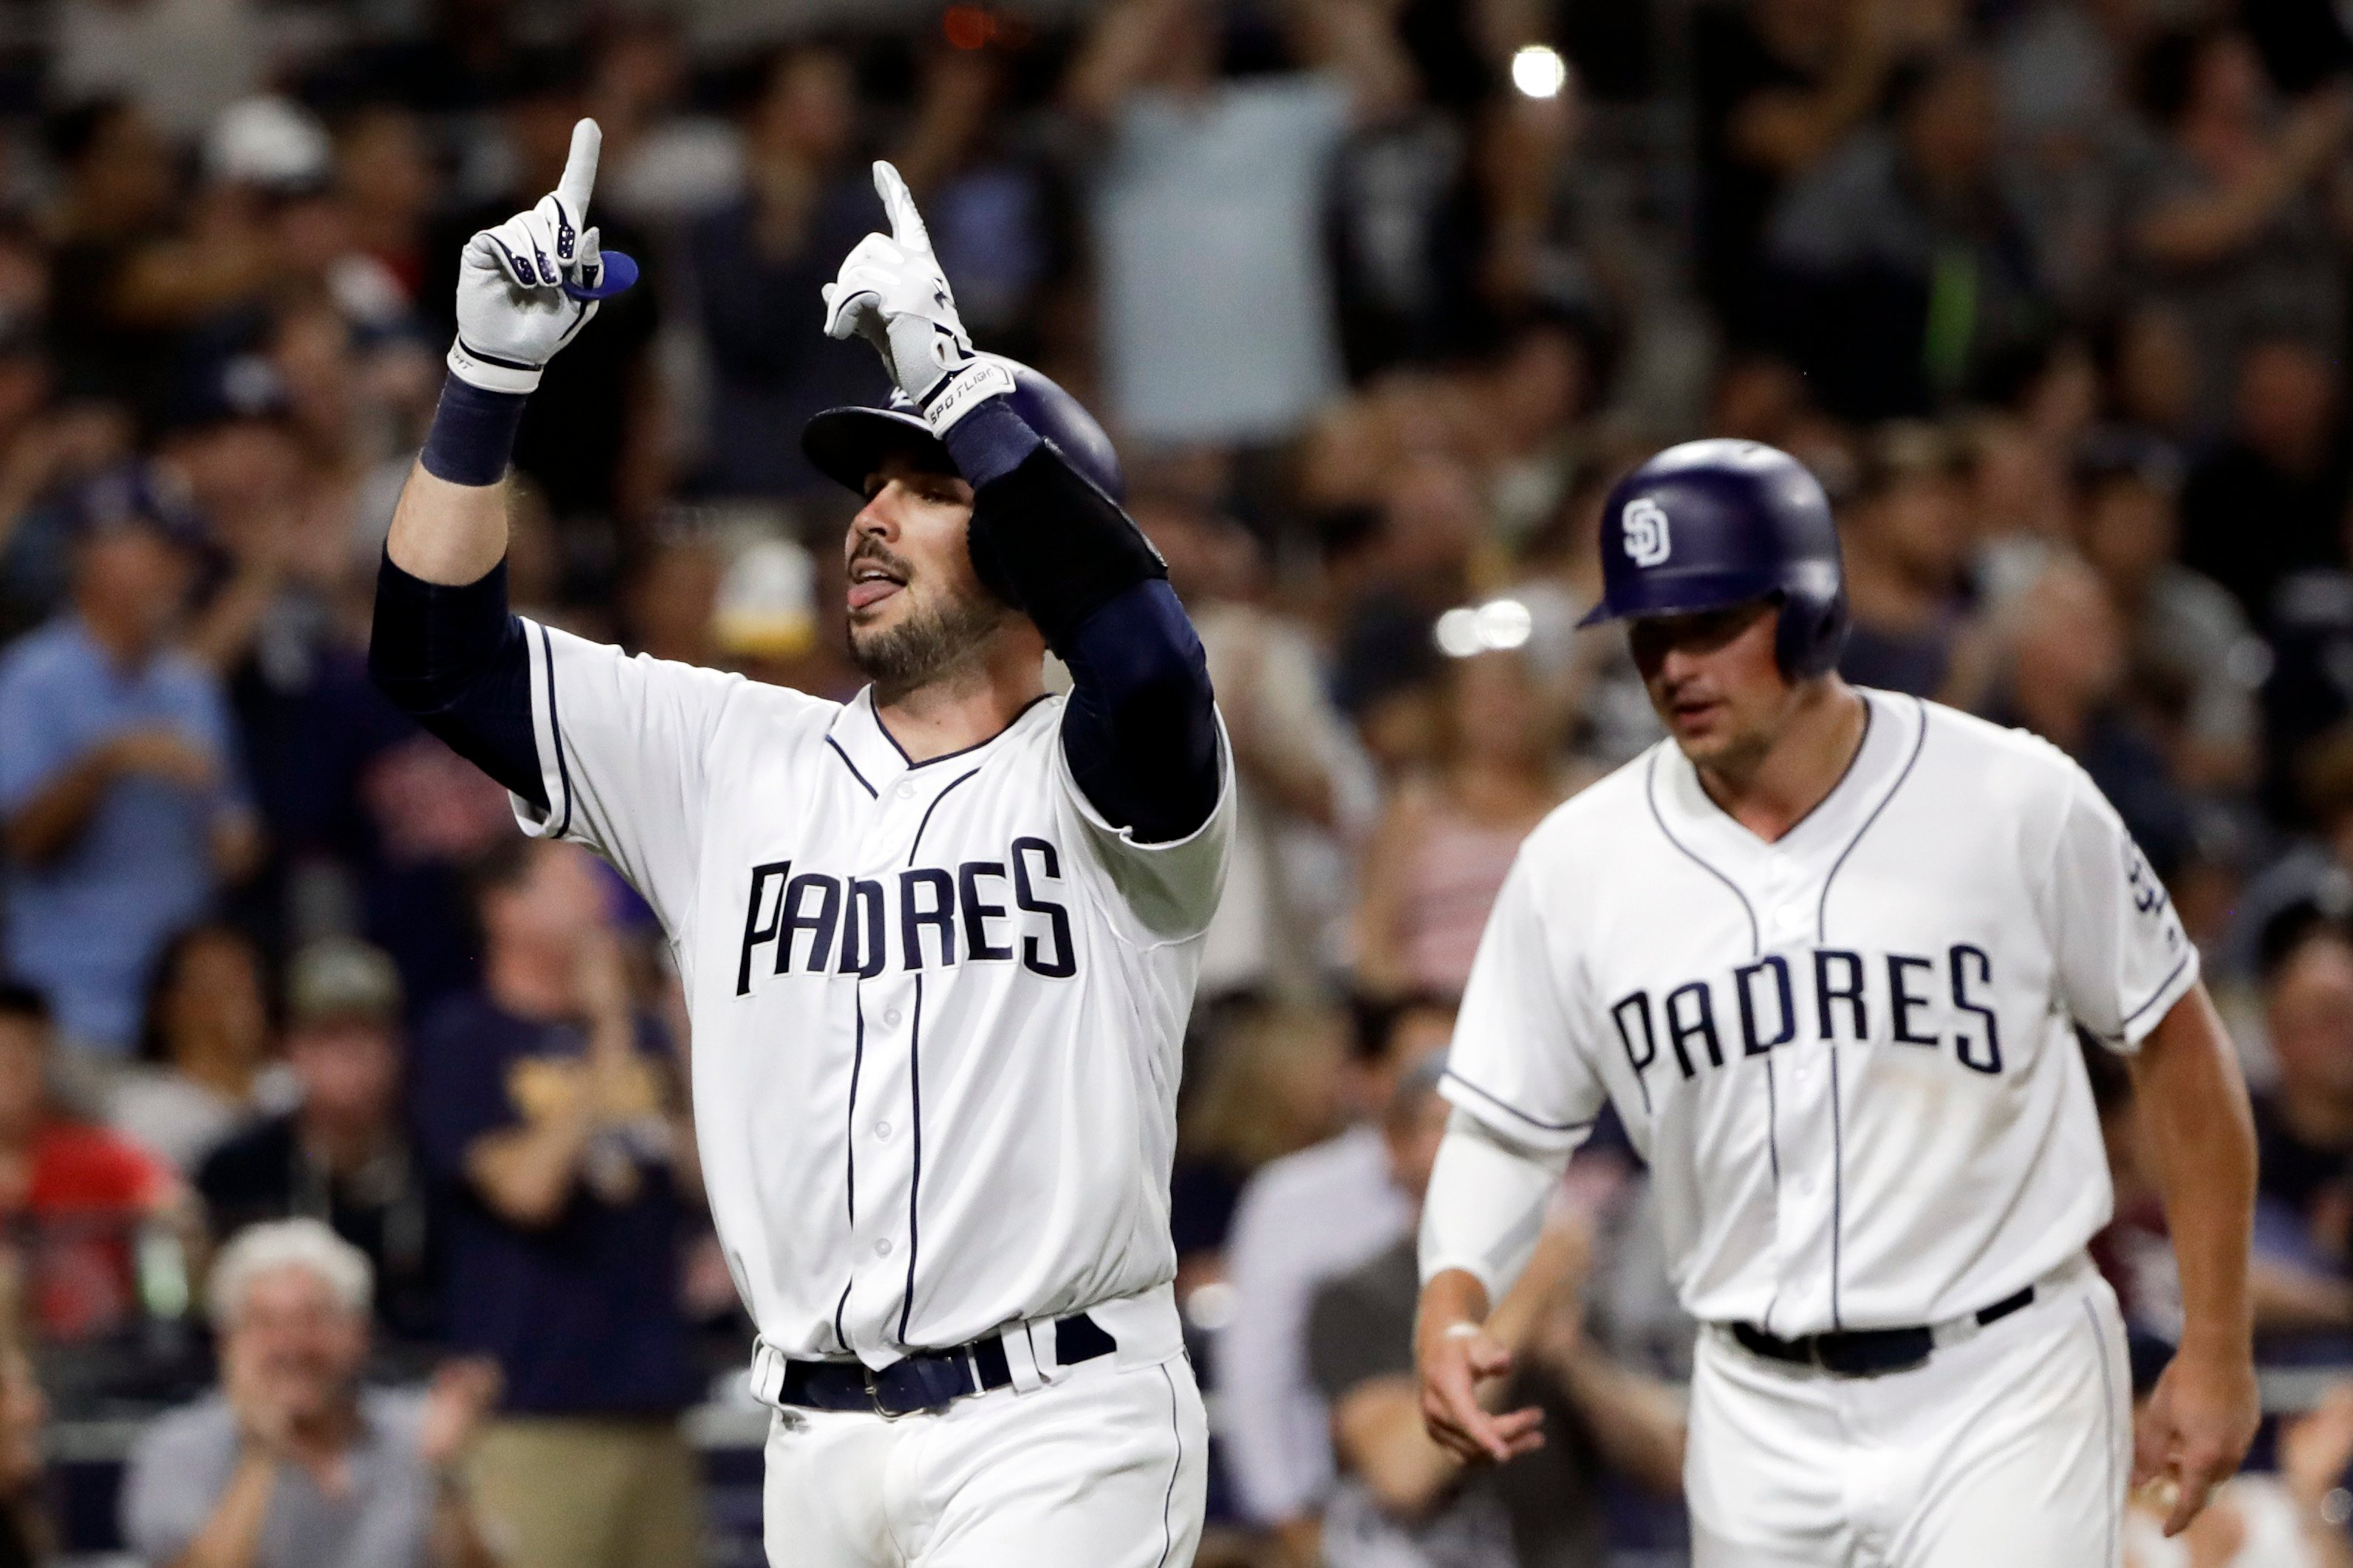 San Diego Padres' Austin Hedges, left, celebrates after hitting two-run home run as teammate Hunter Renfroe, right, follows during the eighth inning of a baseball game against the Minnesota Twins on Tuesday, Aug. 1, 2017, in San Diego. (AP Photo/Gregory B